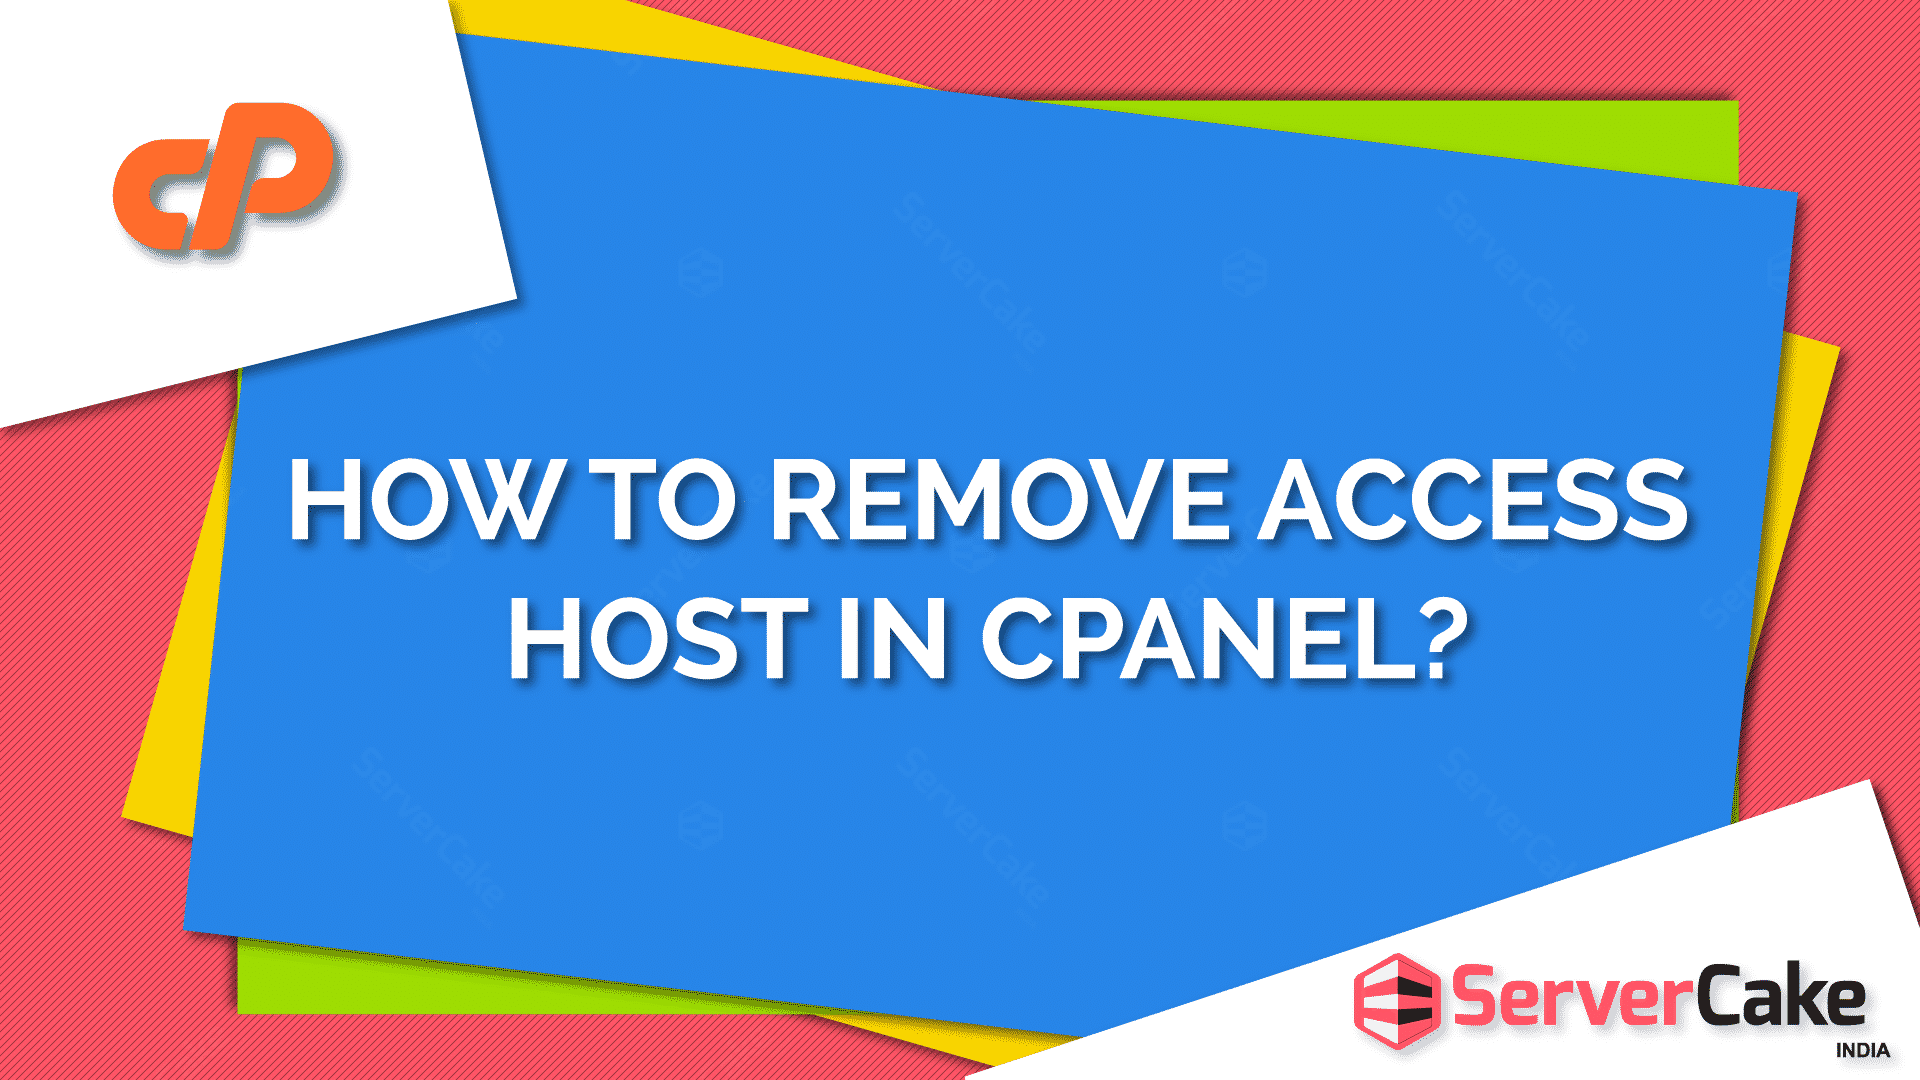 Remove access host in cPanel